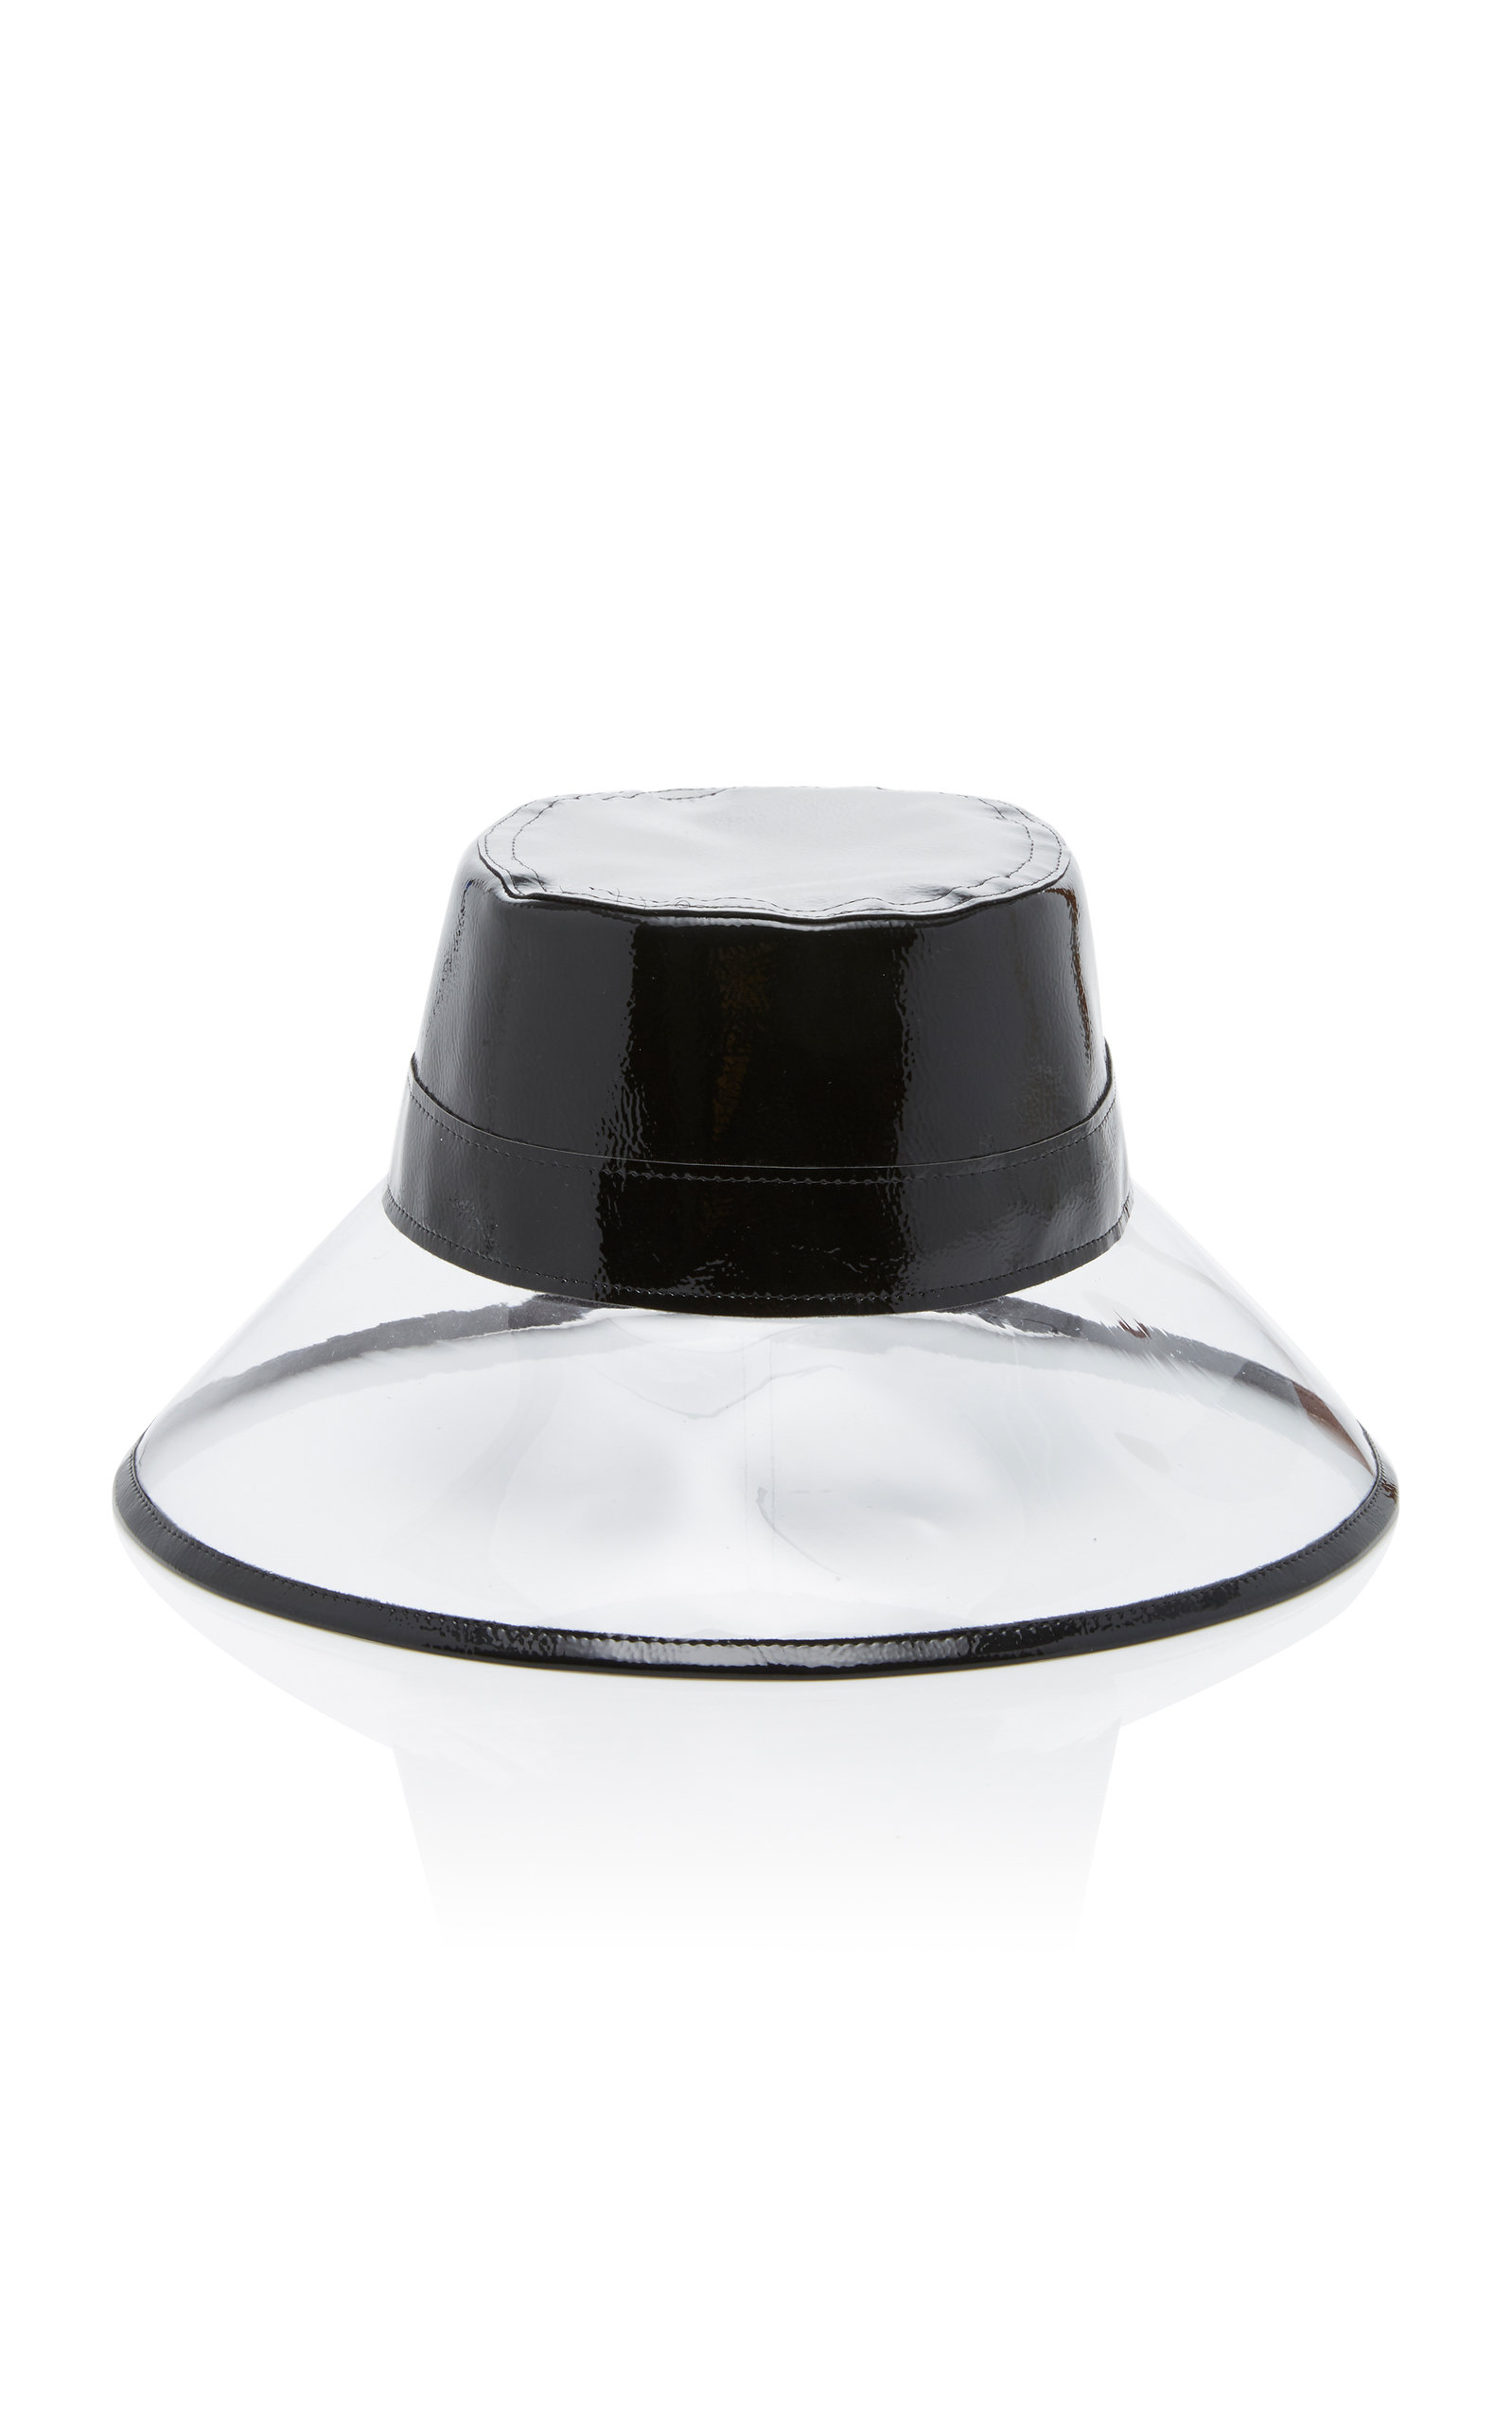 Go-Go Patent Leather and PVC Bucket Hat by Eric  6dbe5566a1b